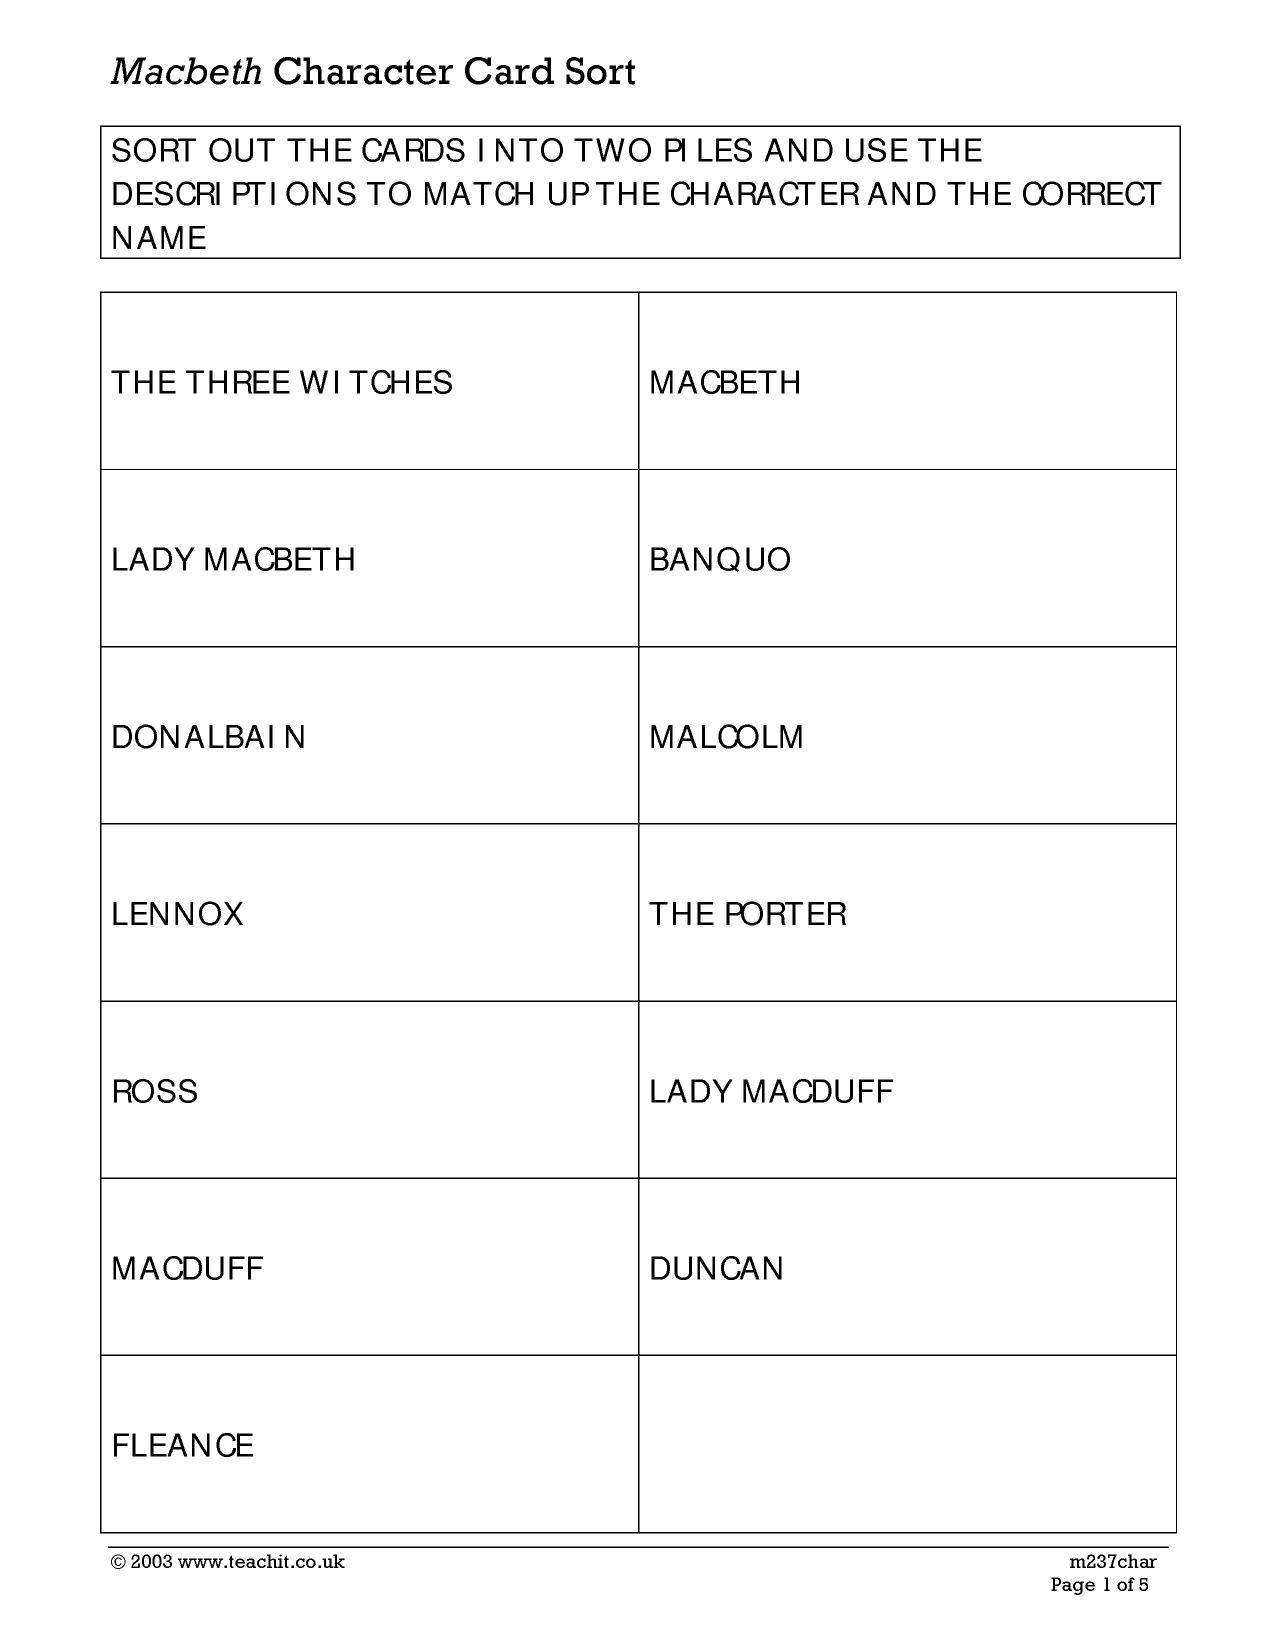 Macbeth Character Card Sort